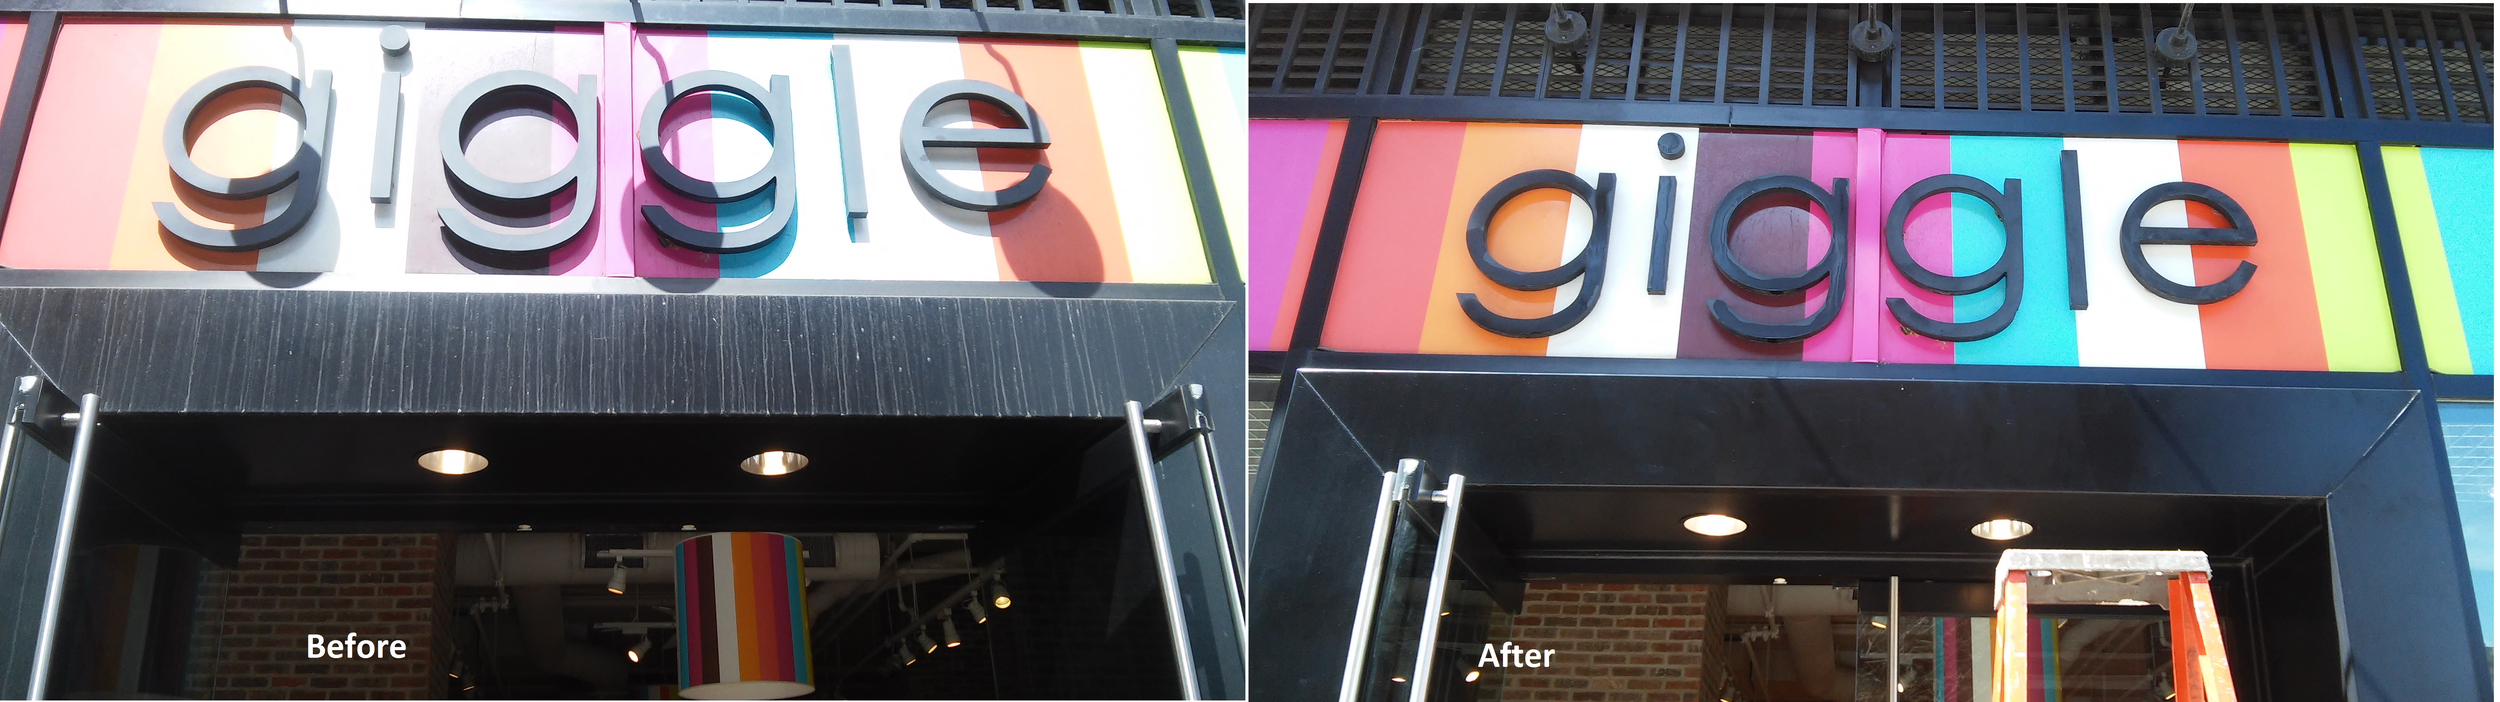 Retail - Cleaned and Polished Aluminum Entrance